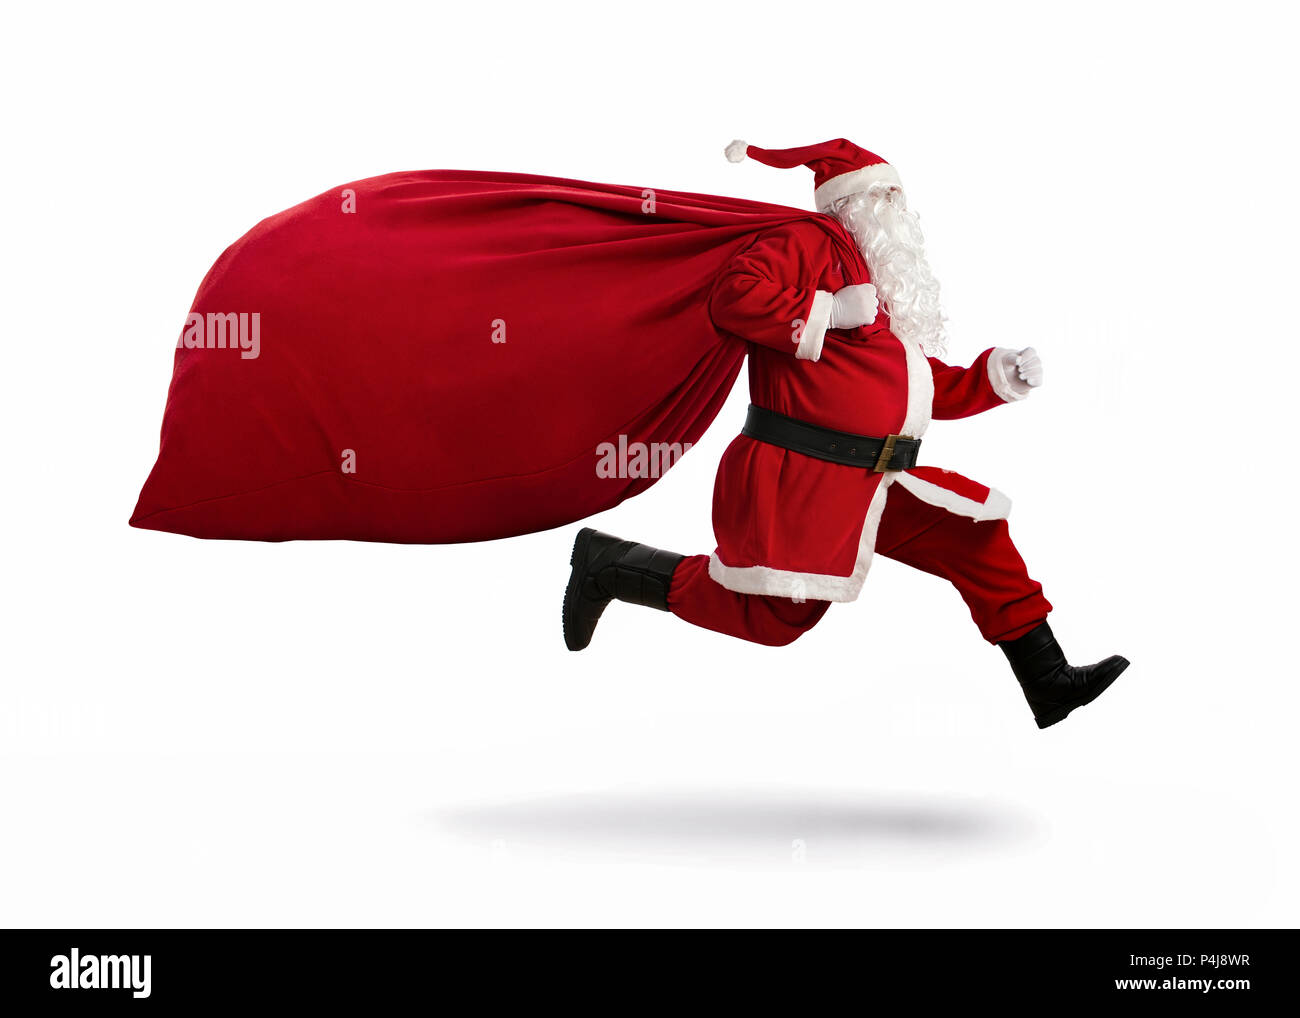 Santa Claus on the run to delivery christmas gifts isolated on white background - Stock Image